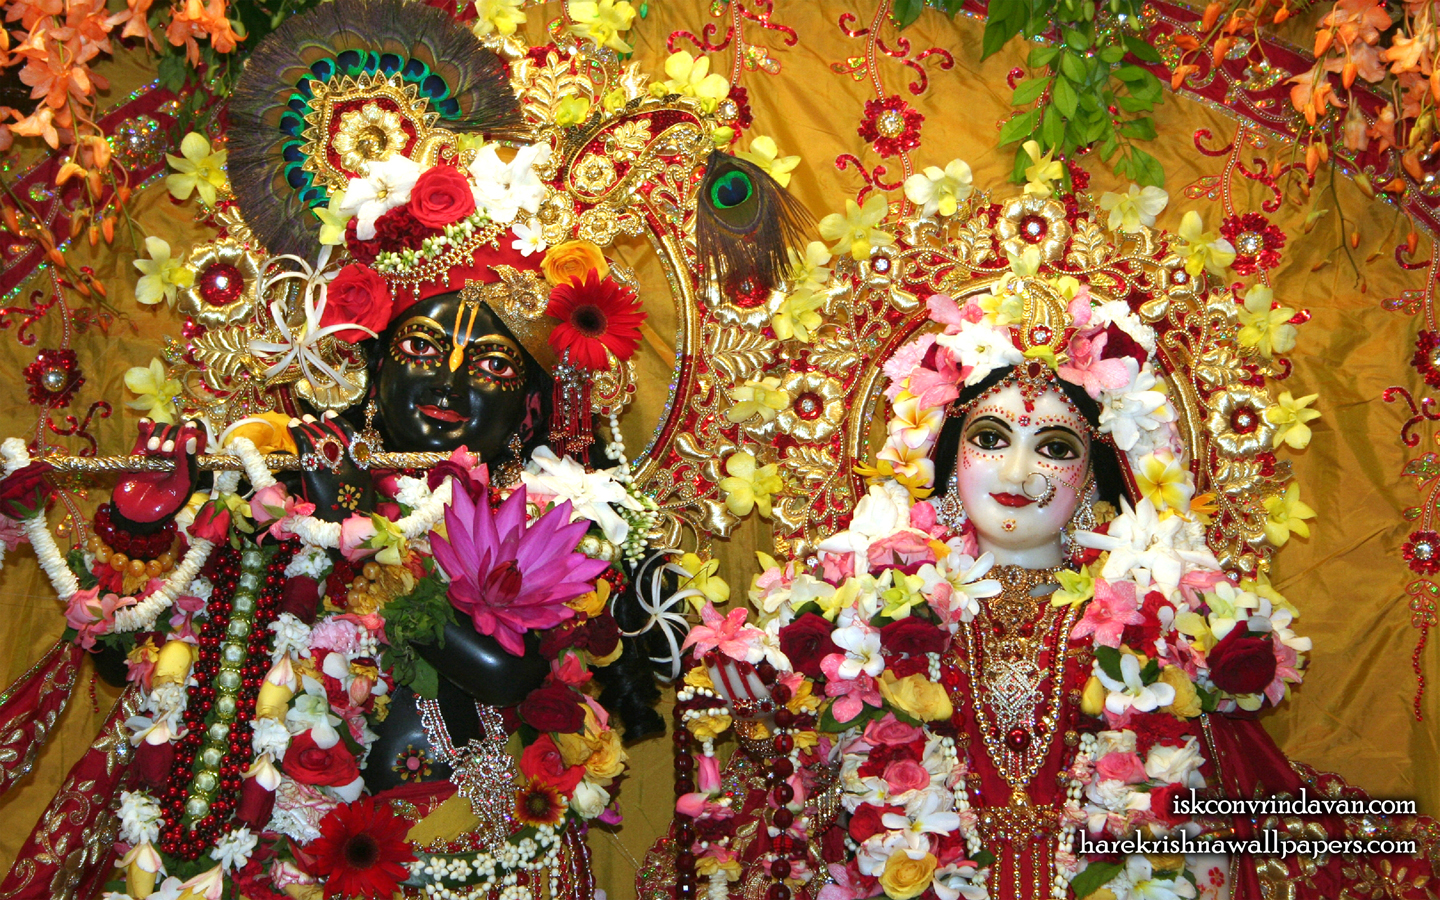 Sri Sri Radha Shyamsundar Close up Wallpaper (004) Size 1440x900 Download